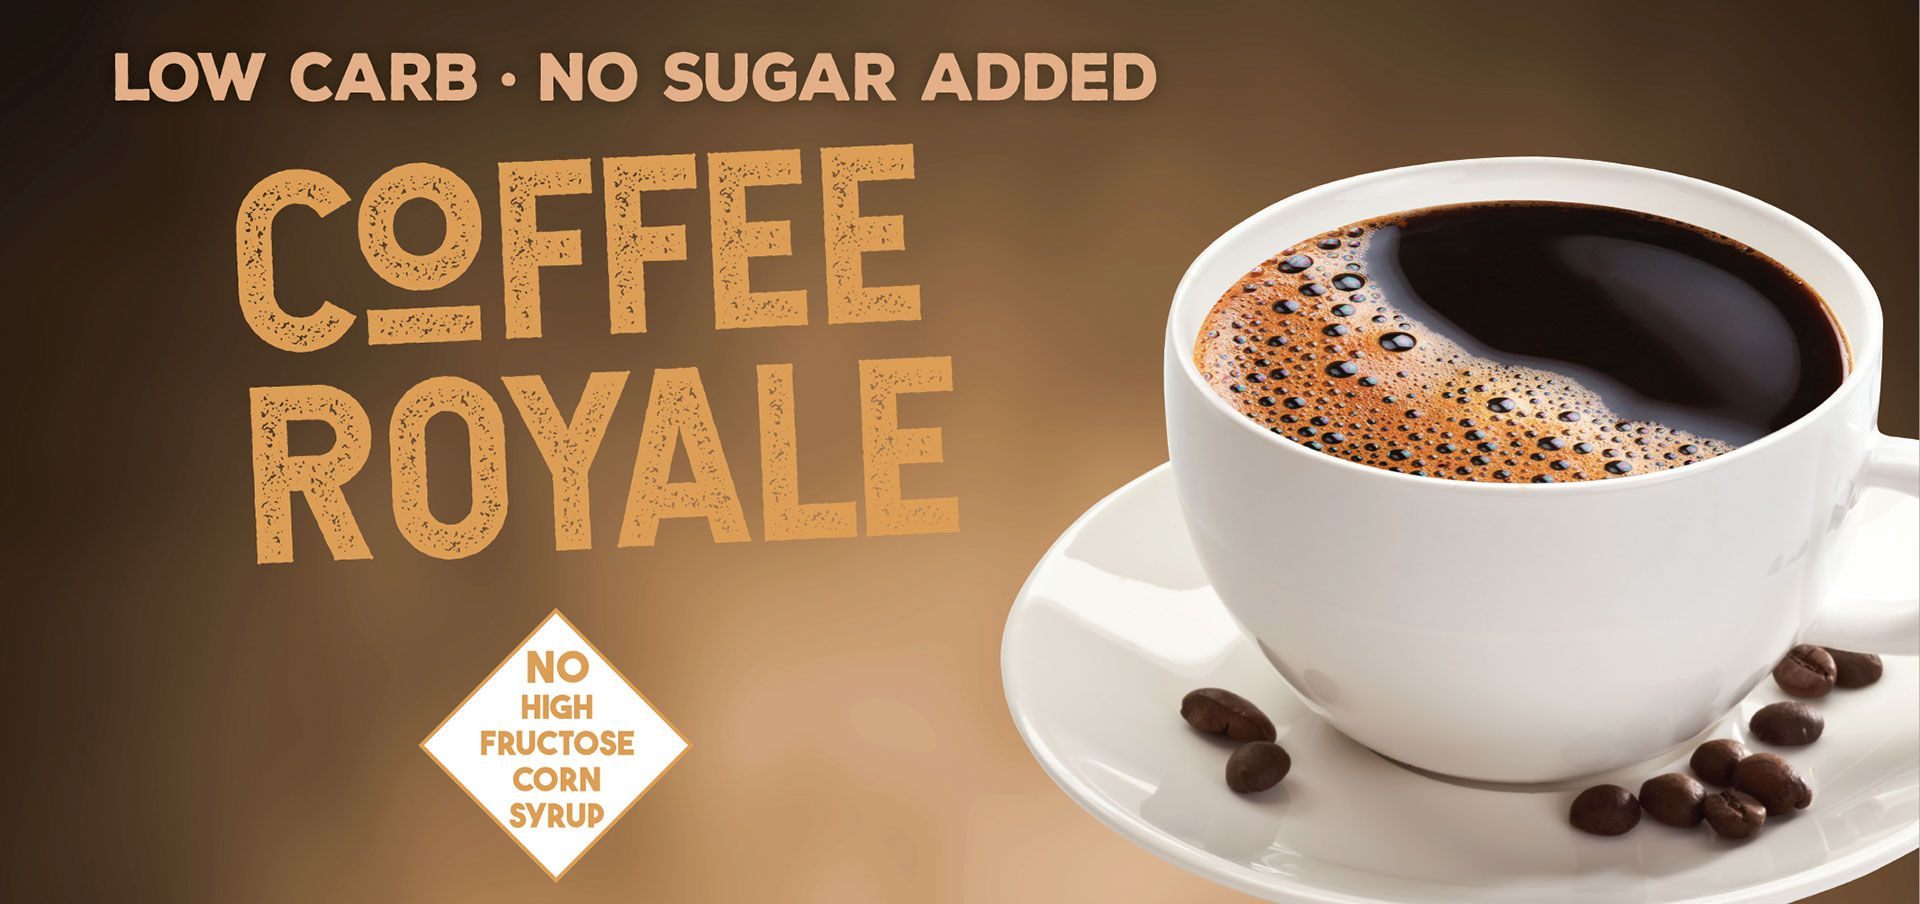 coffee royale label image